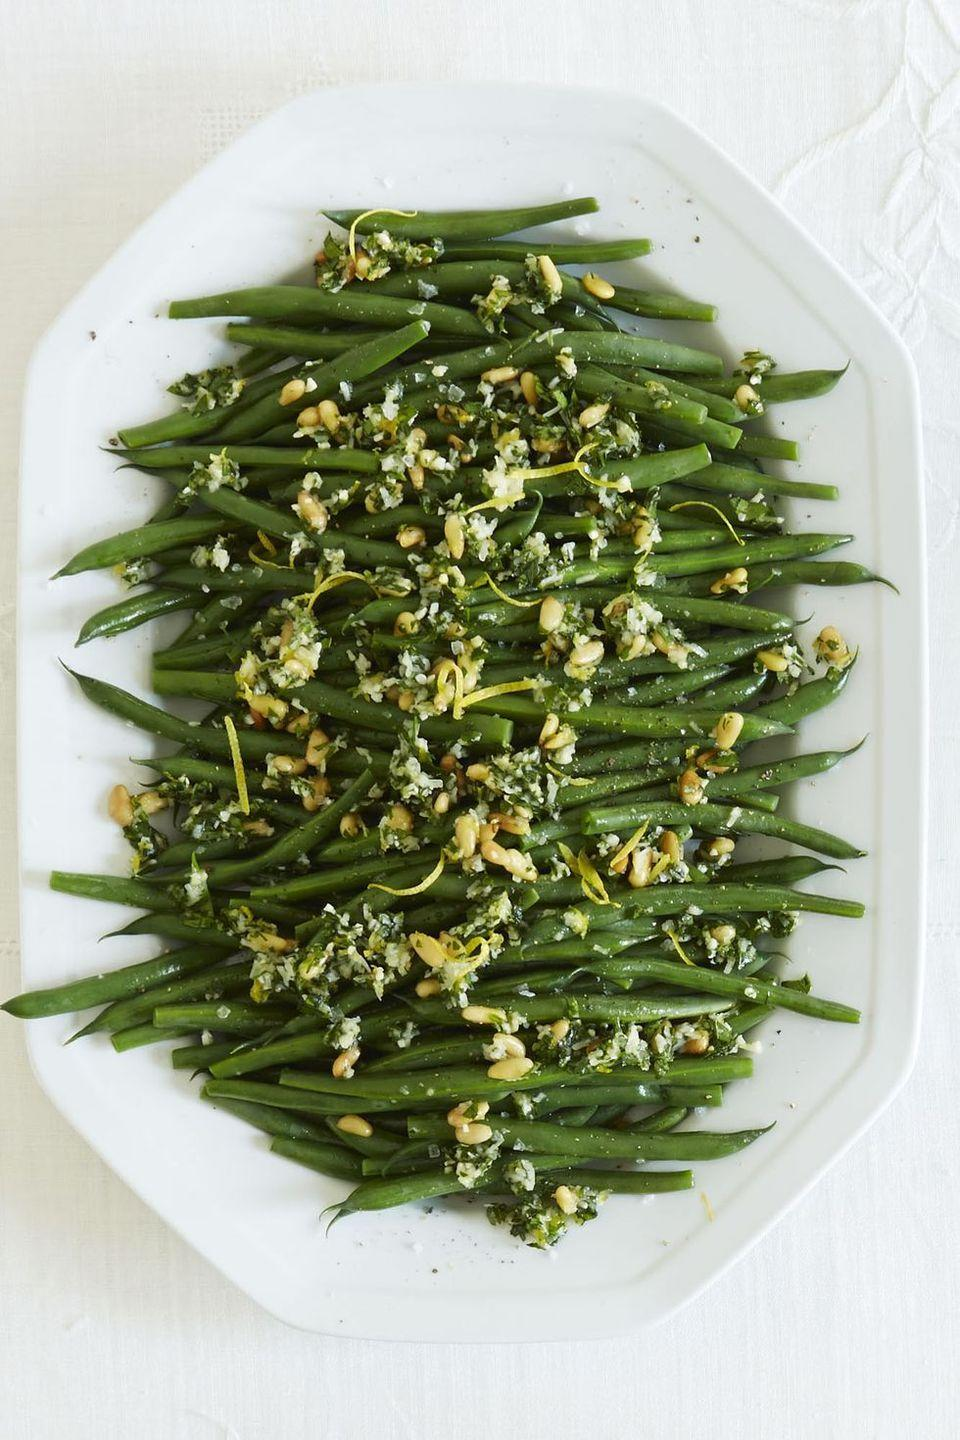 """<p>If you're a lover of veggie sides, then get a taste of this cheesy and bright classic dish.<br><br><em><a href=""""https://www.goodhousekeeping.com/food-recipes/a15467/green-beans-gremolata-recipe-ghk1113/"""" rel=""""nofollow noopener"""" target=""""_blank"""" data-ylk=""""slk:Get the recipe for Green Beans Gremolata »"""" class=""""link rapid-noclick-resp"""">Get the recipe for Green Beans Gremolata »</a></em><br></p>"""